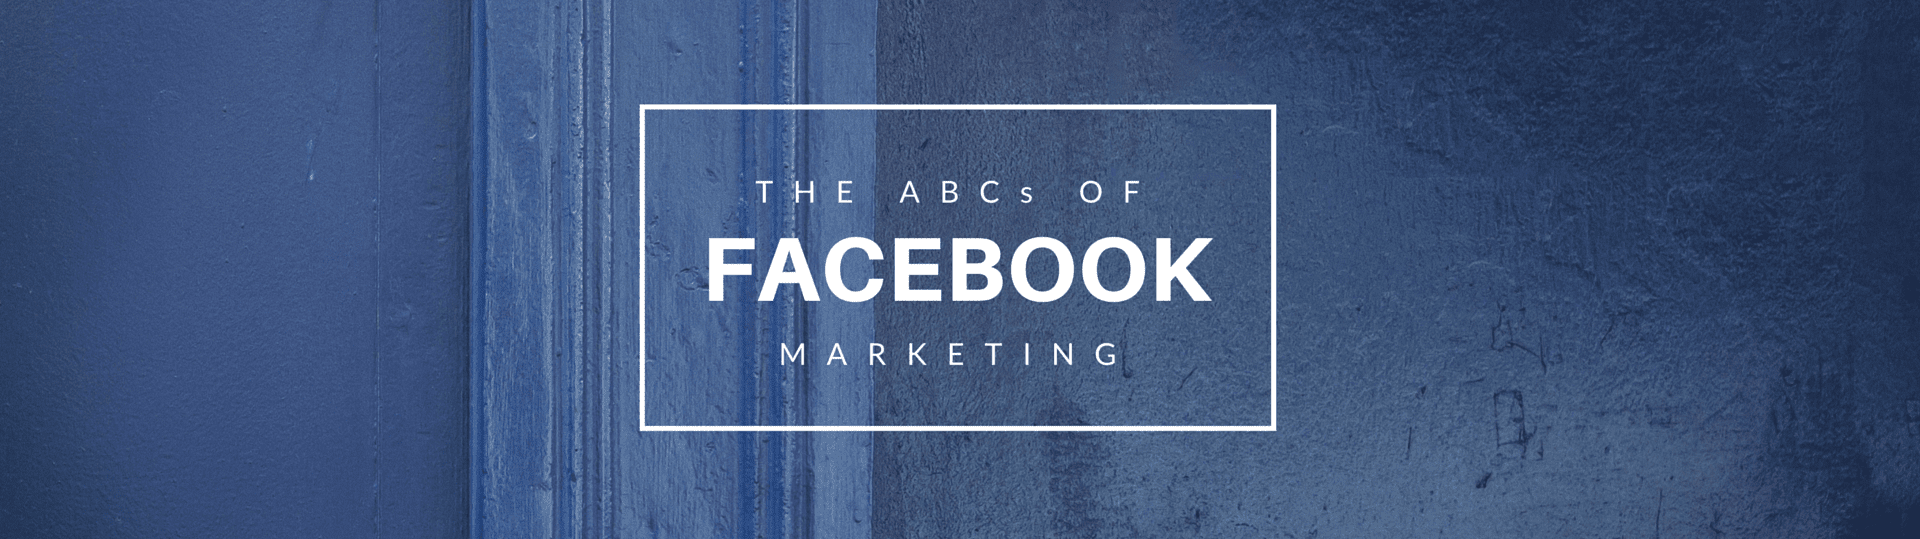 5 Tips for Starting Your Facebook Marketing